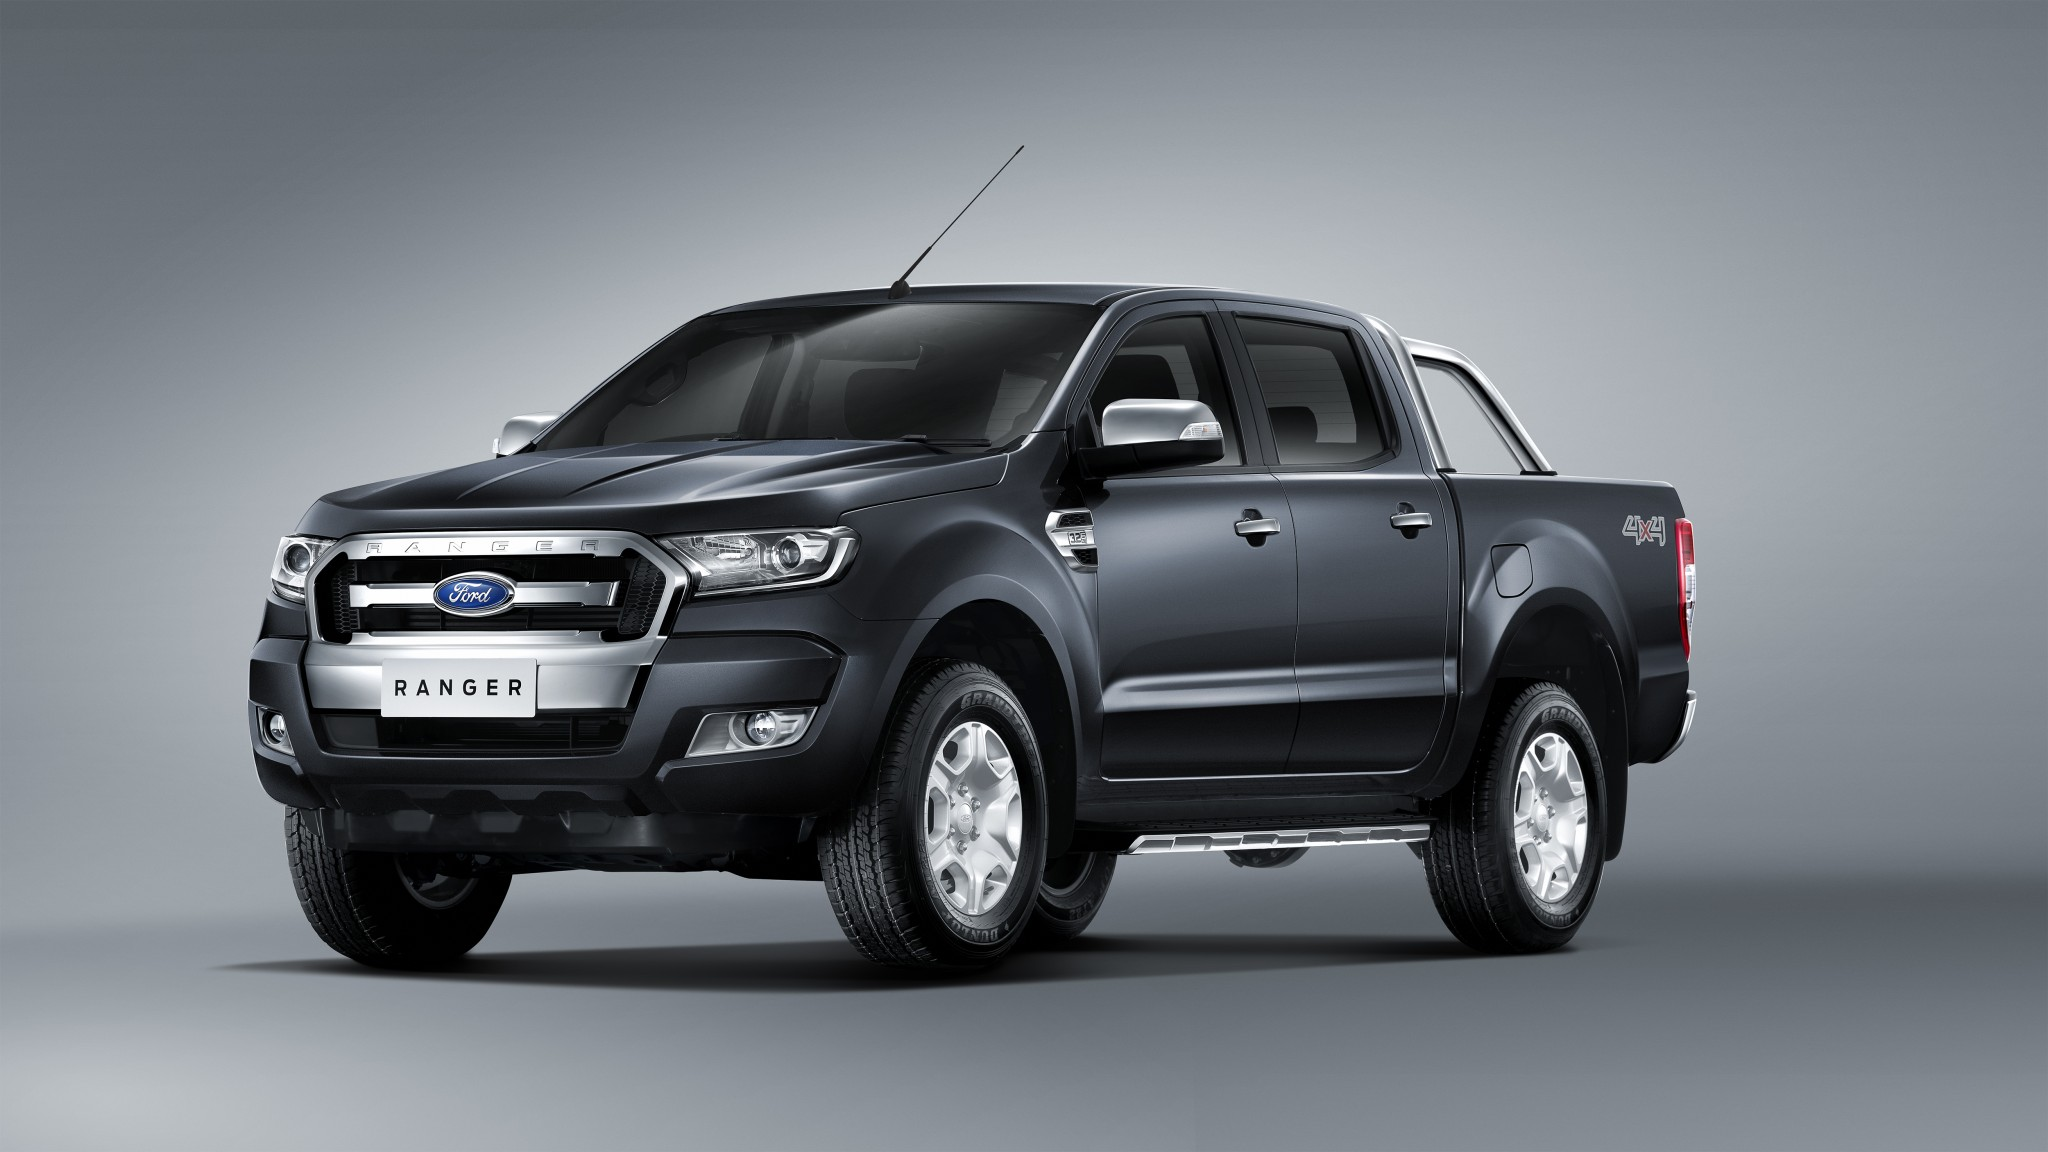 2015 ford ranger details revealed practical motoring. Black Bedroom Furniture Sets. Home Design Ideas